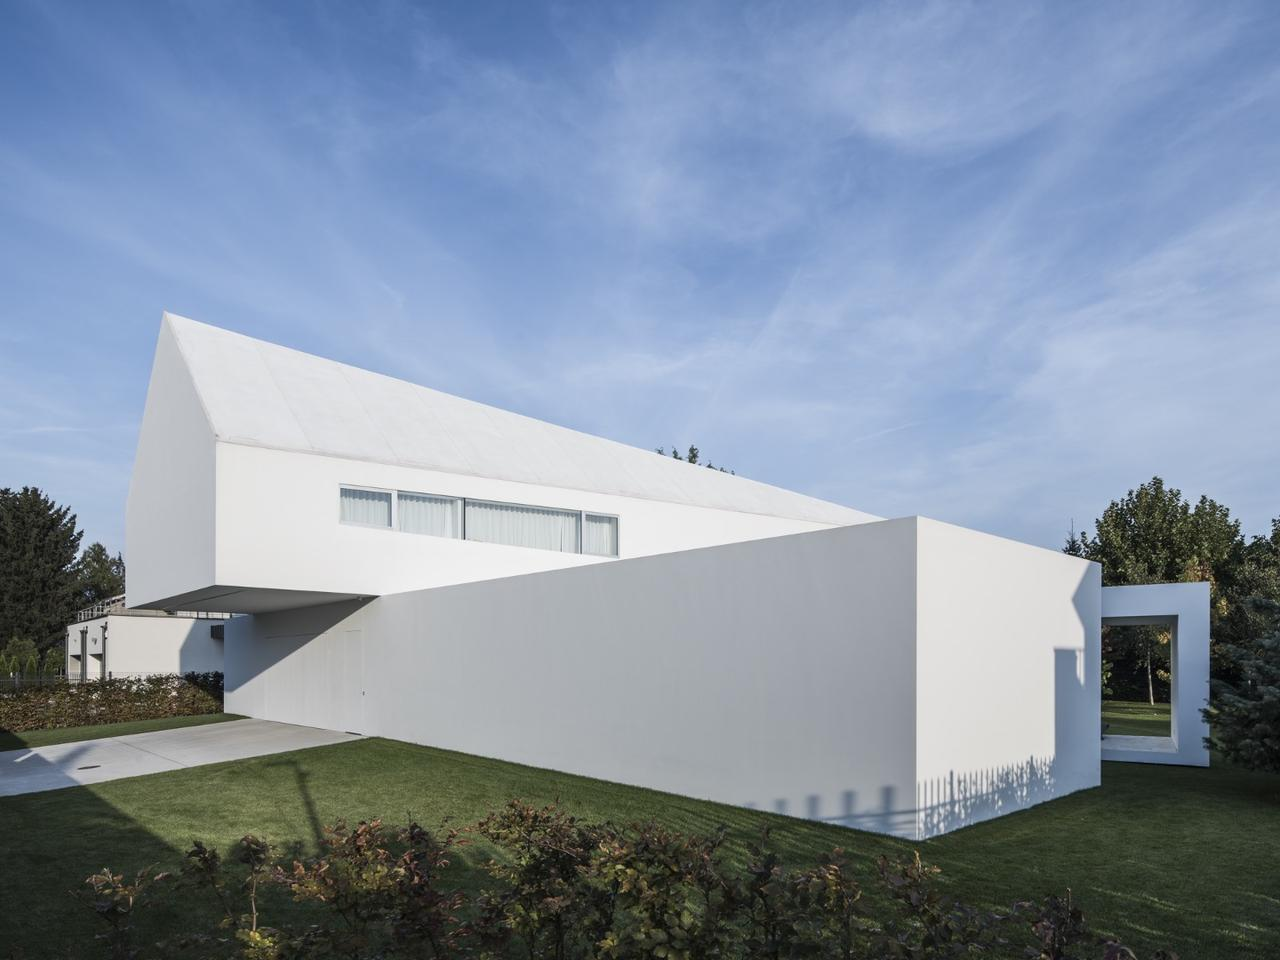 Quadrant House is located in central Poland